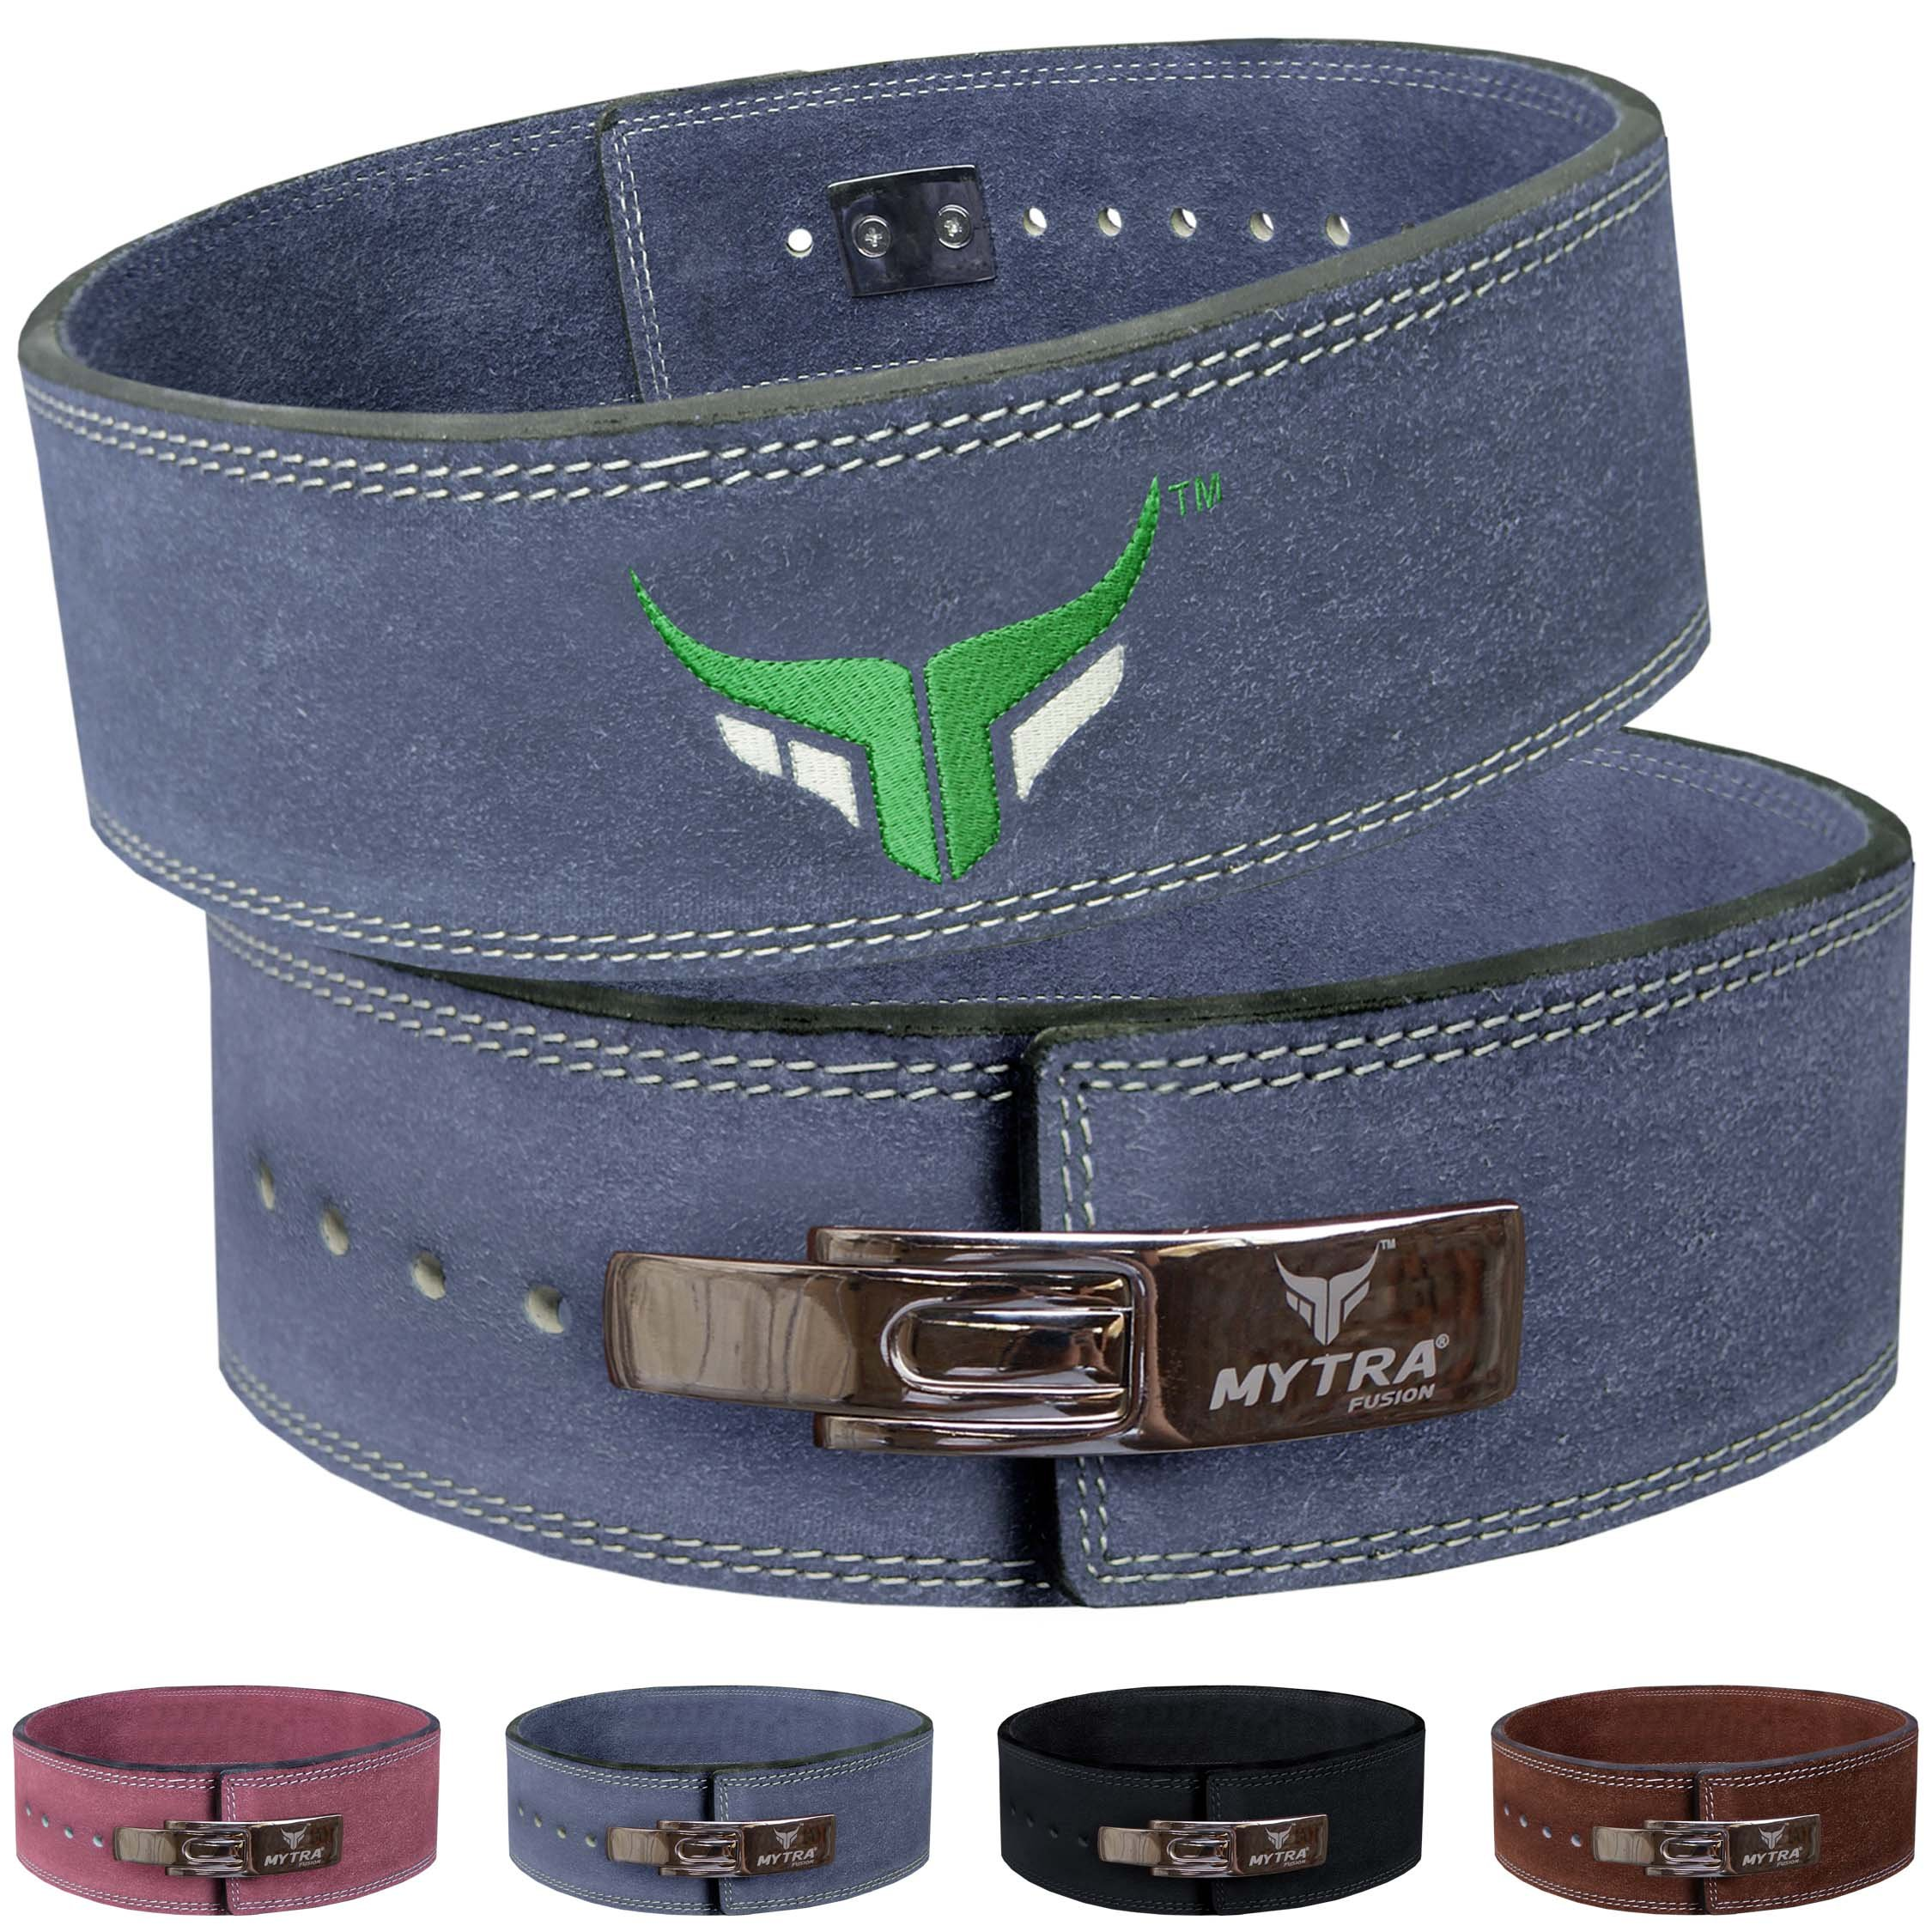 Mytra Fusion Leather Weight Lifting Power Lifting Back Support Belt Weight Lifting Belt Men Weight Lifting Belt Women Weightlifting Belt (Small, Grey)